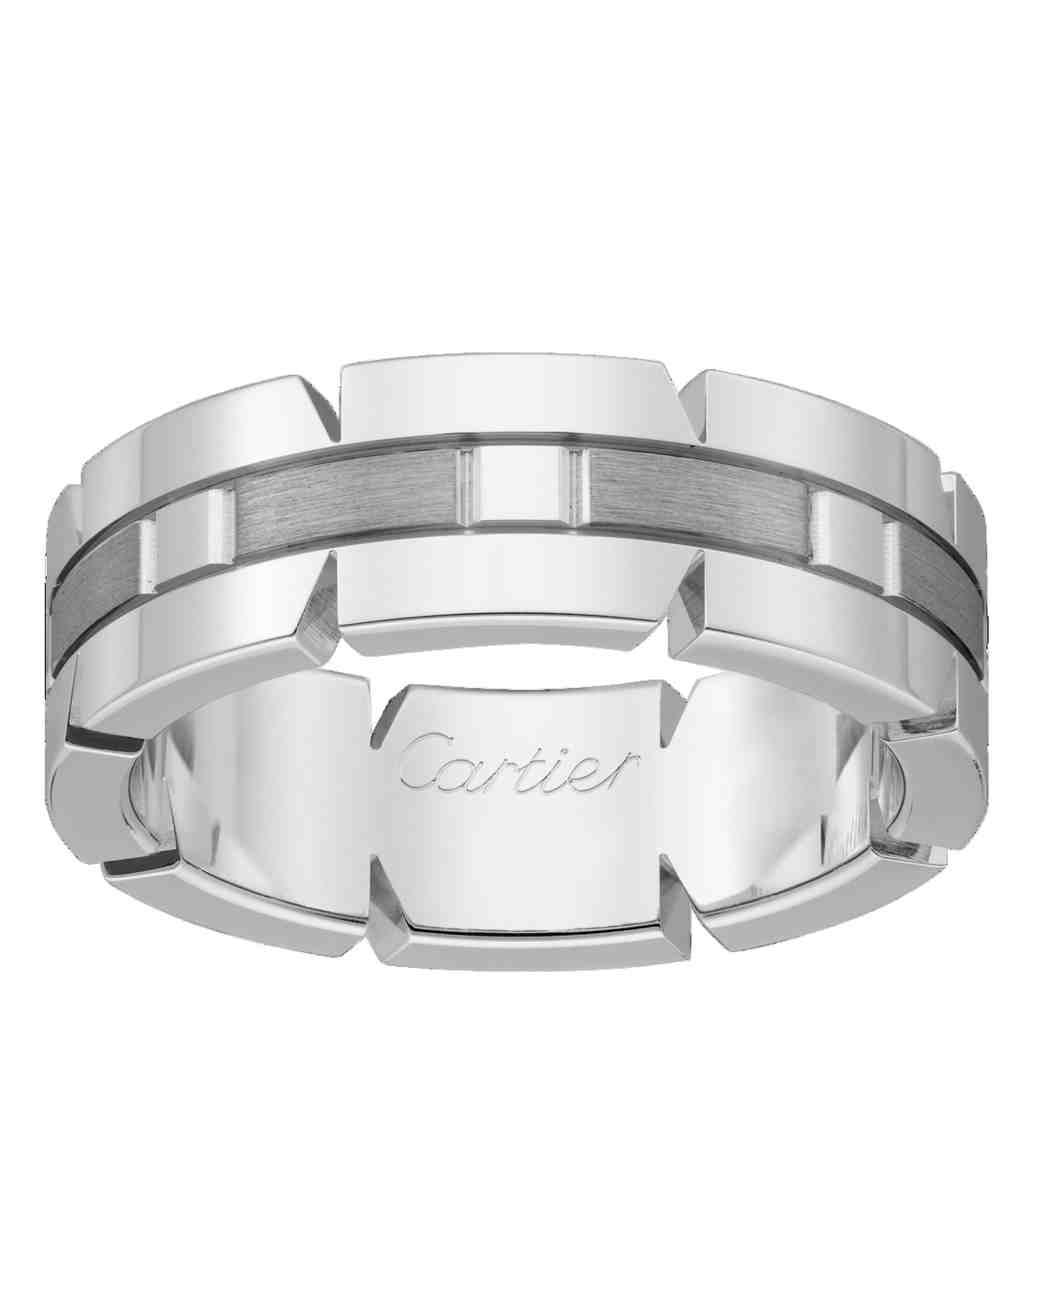 Best 25+ Cartier wedding bands ideas on Pinterest | Cartier ...